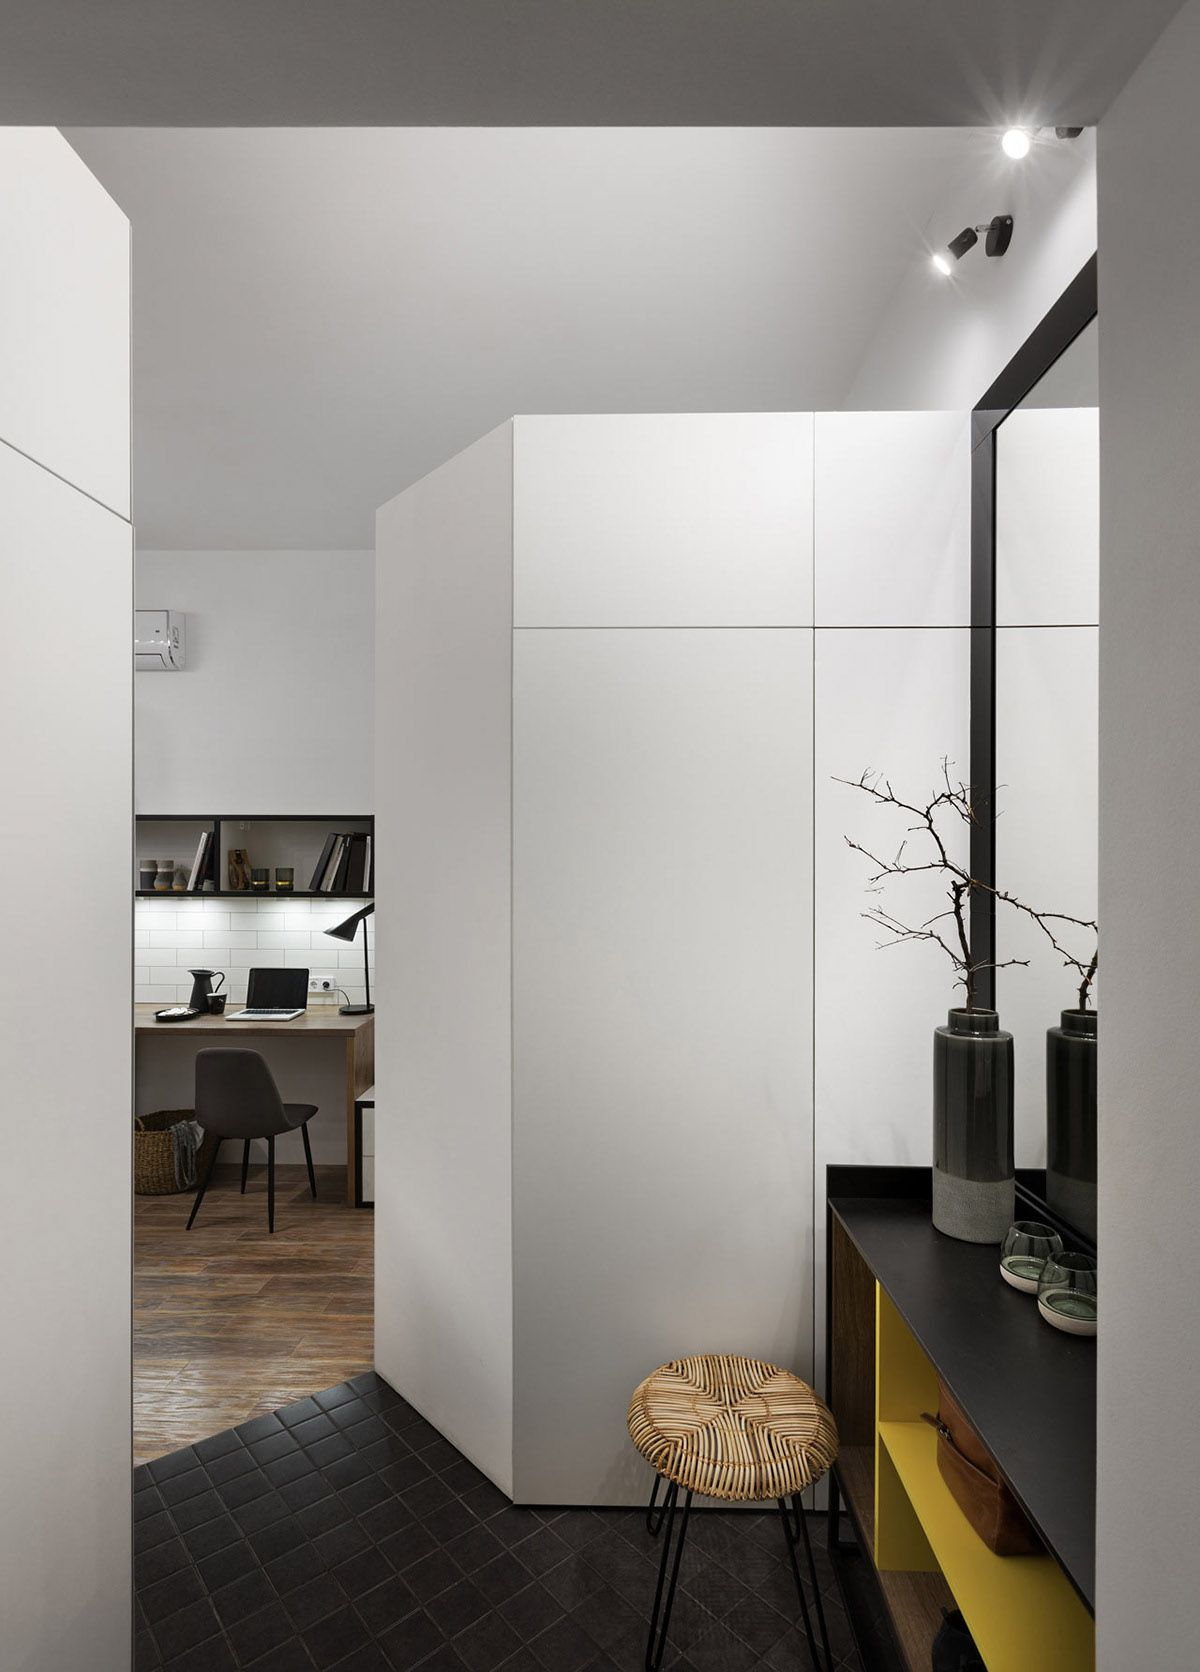 Designing A Living Space Under 18 Square Metres: Challenge ...